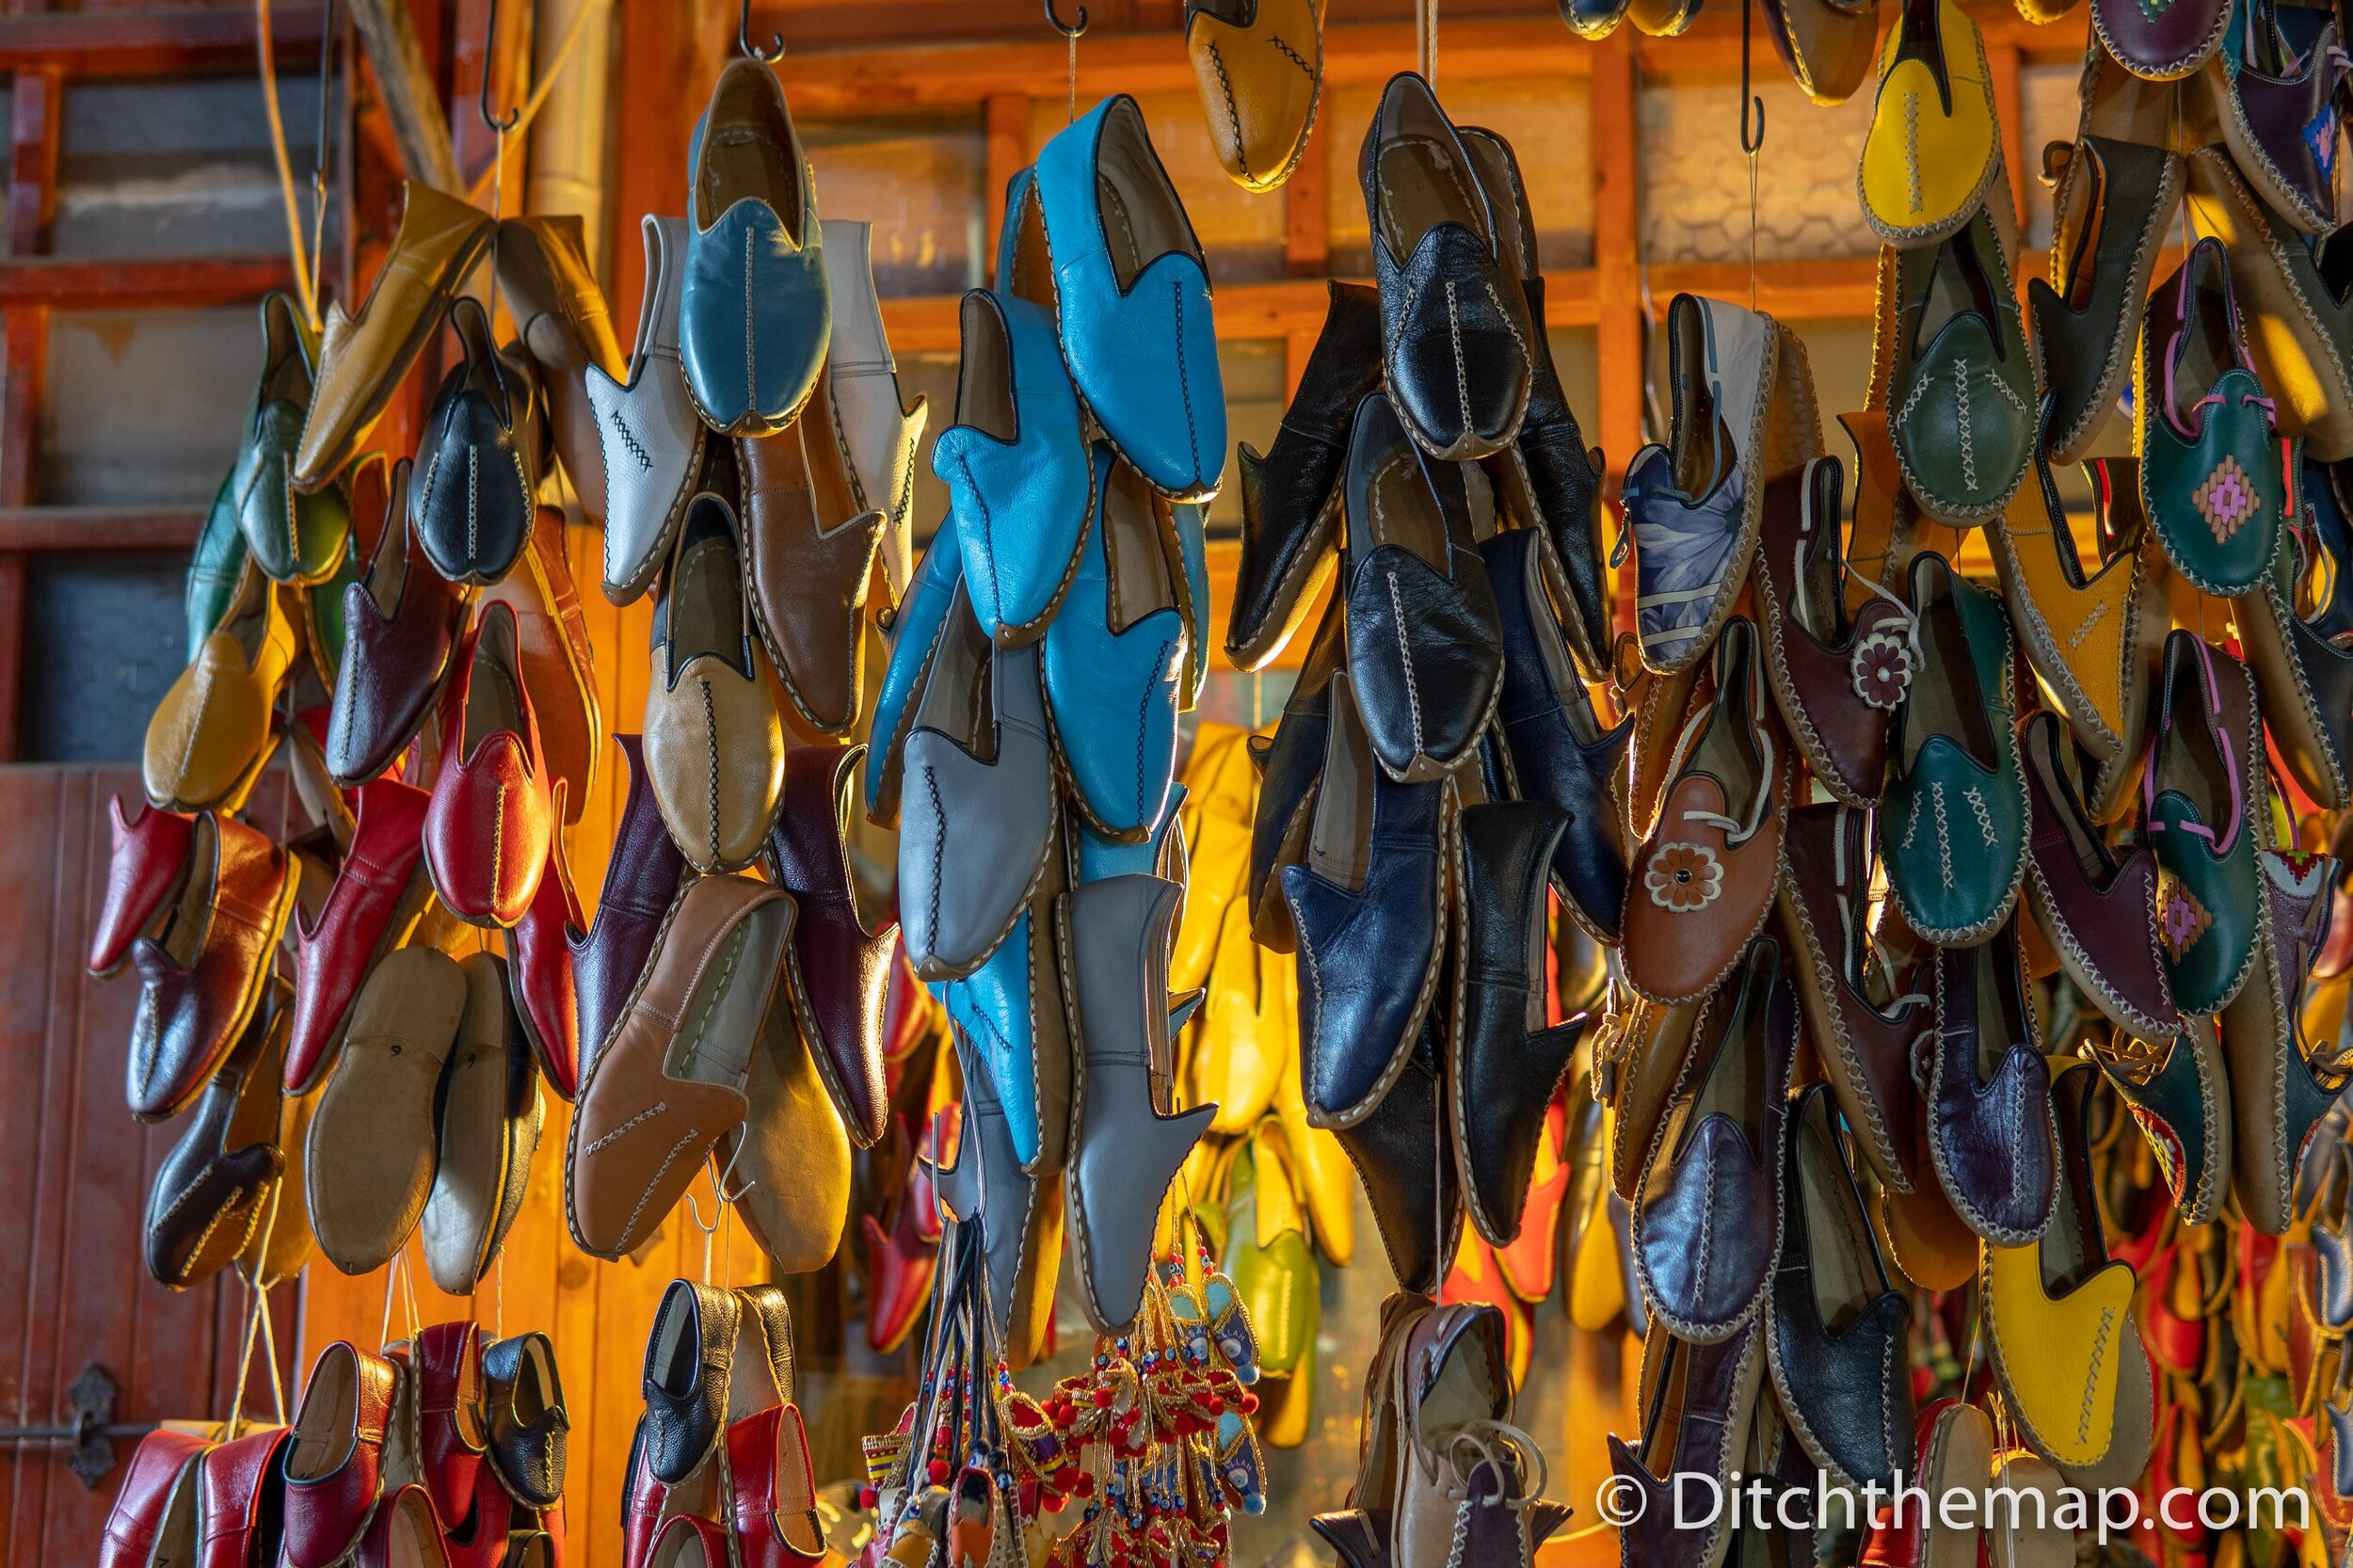 Leather shoes for sale in Gaziantep, Turkey